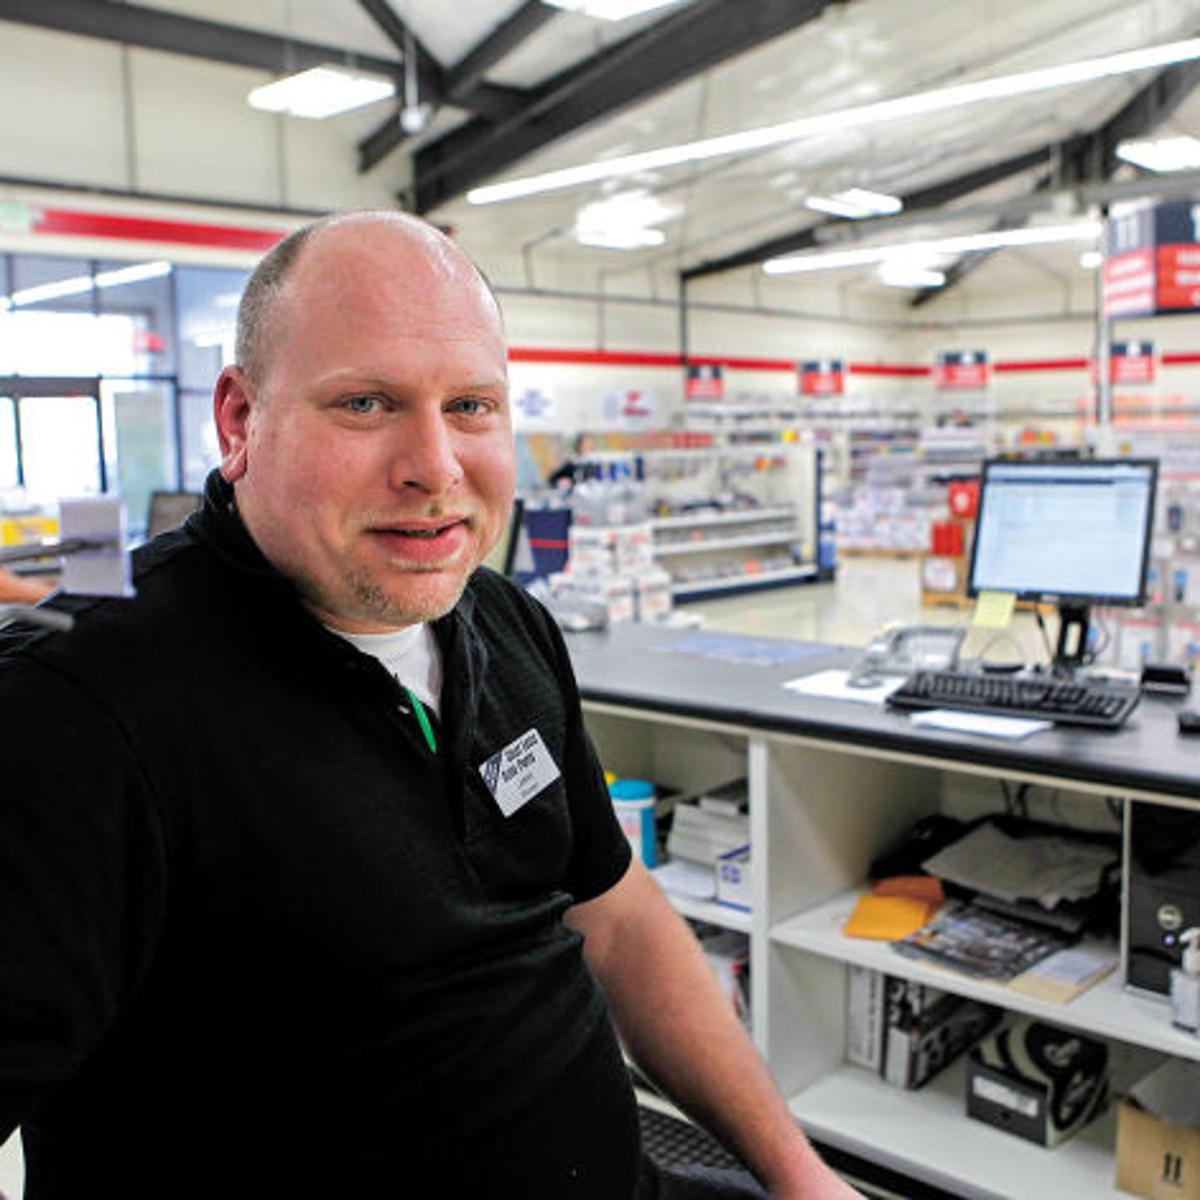 Cost Less Auto >> Talking Business Cost Less Auto Parts Opens In Kelso